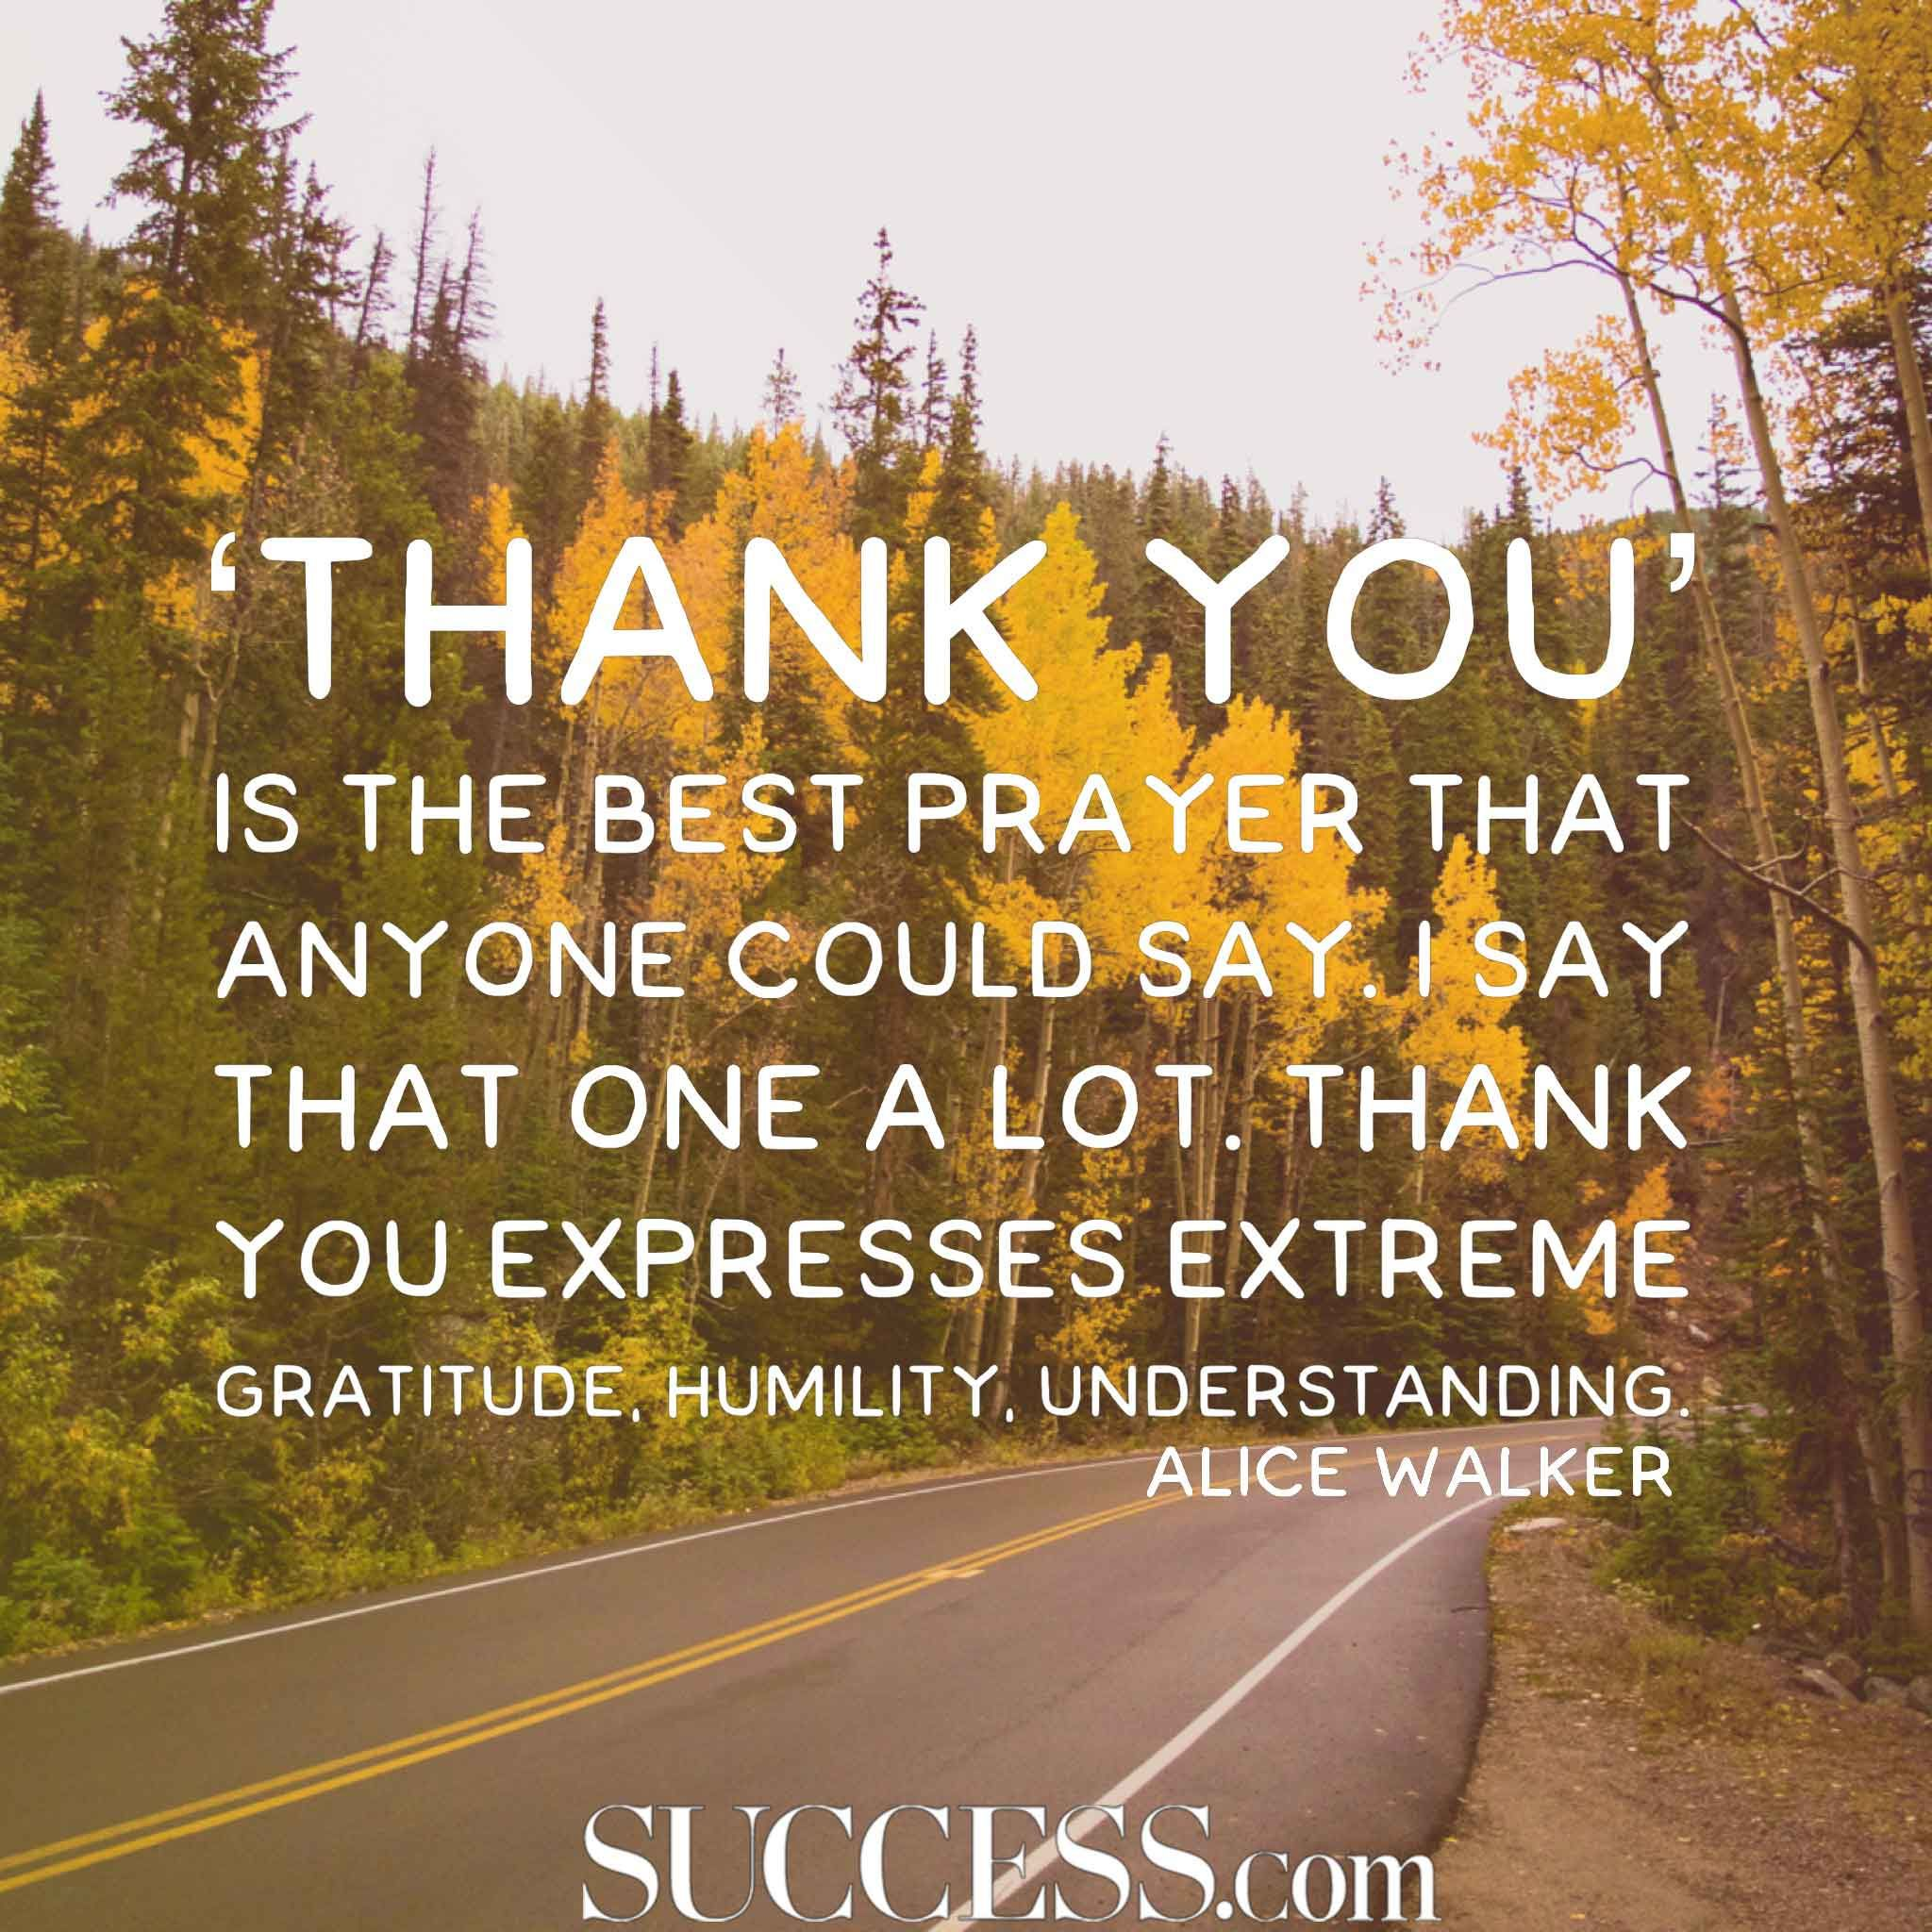 Inspirational Quotes About Gratitude: 15 Thoughtful Quotes About Gratitude